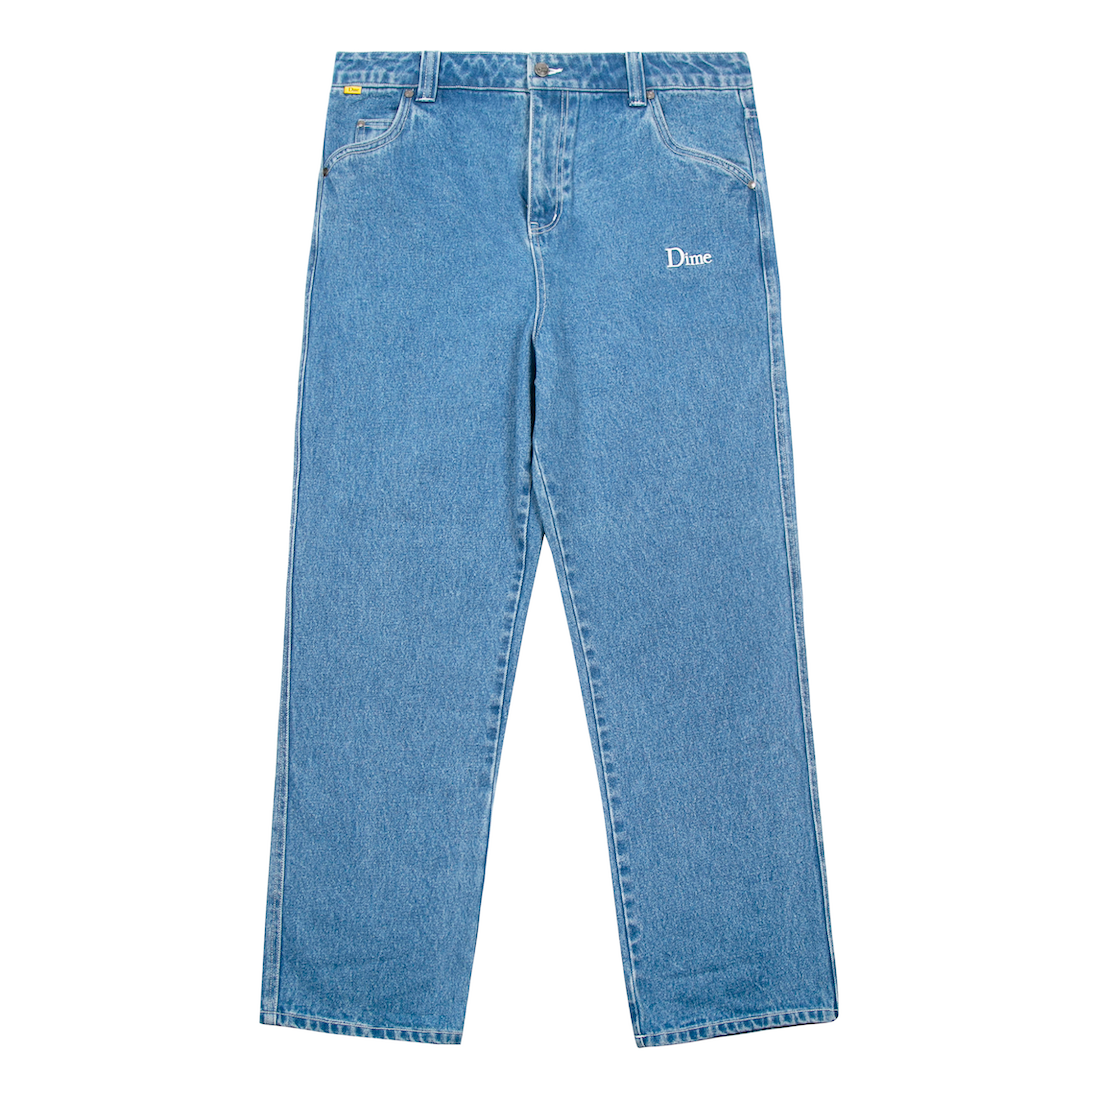 【Dime】Denim Pants - Light Wash